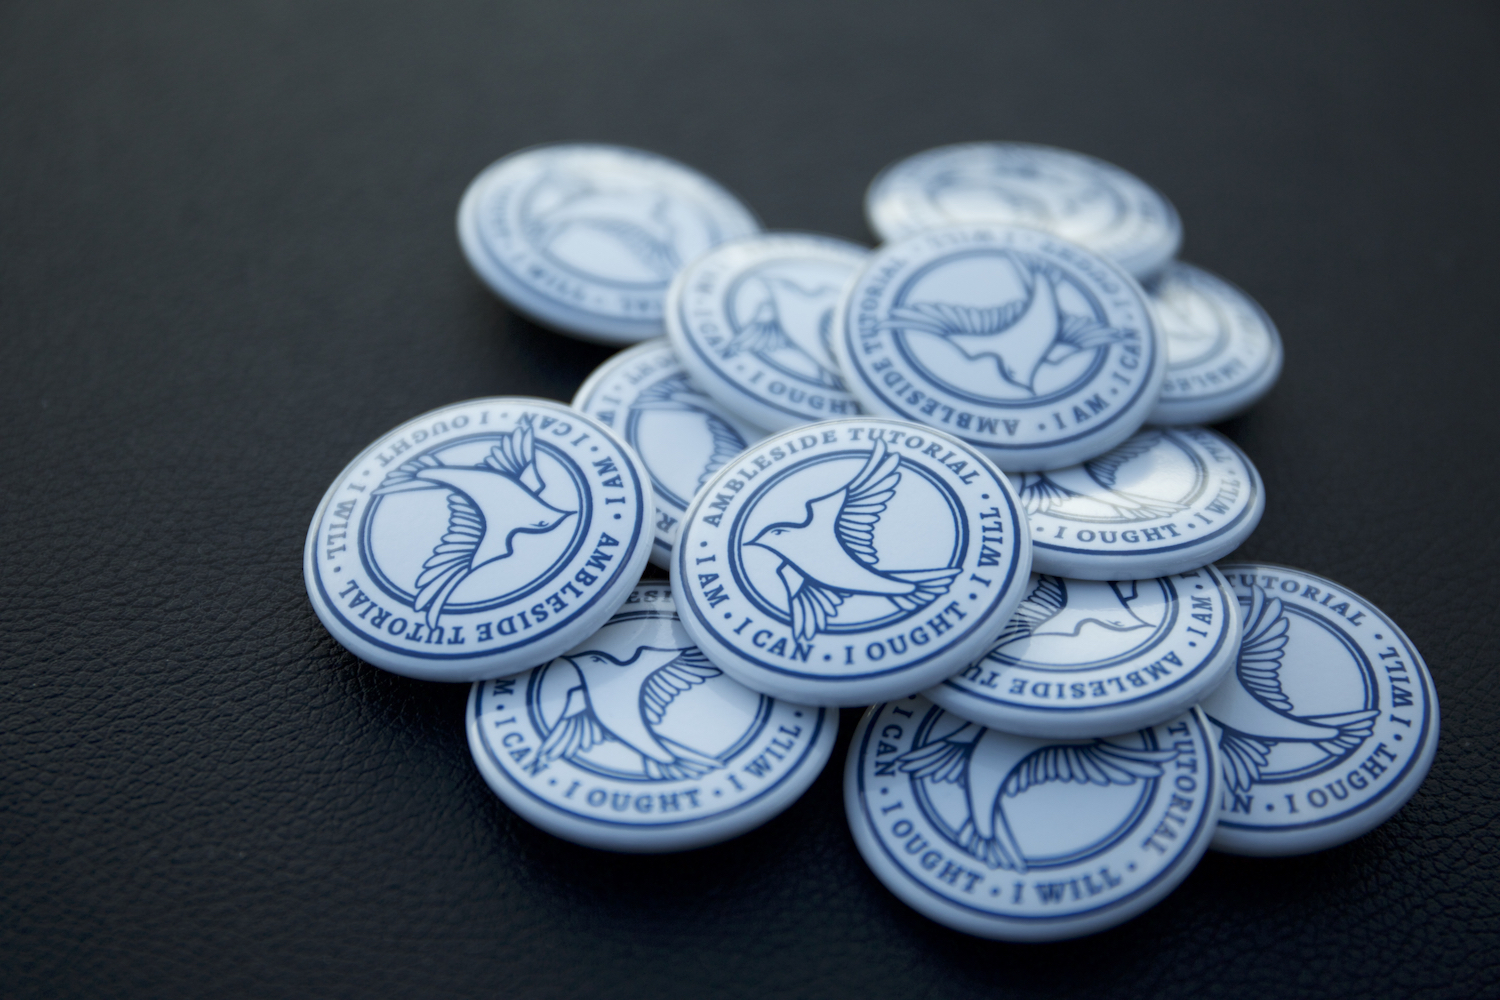 Close-up of buttons printed with the Ingleside Tutorial badge, designed by Serve.